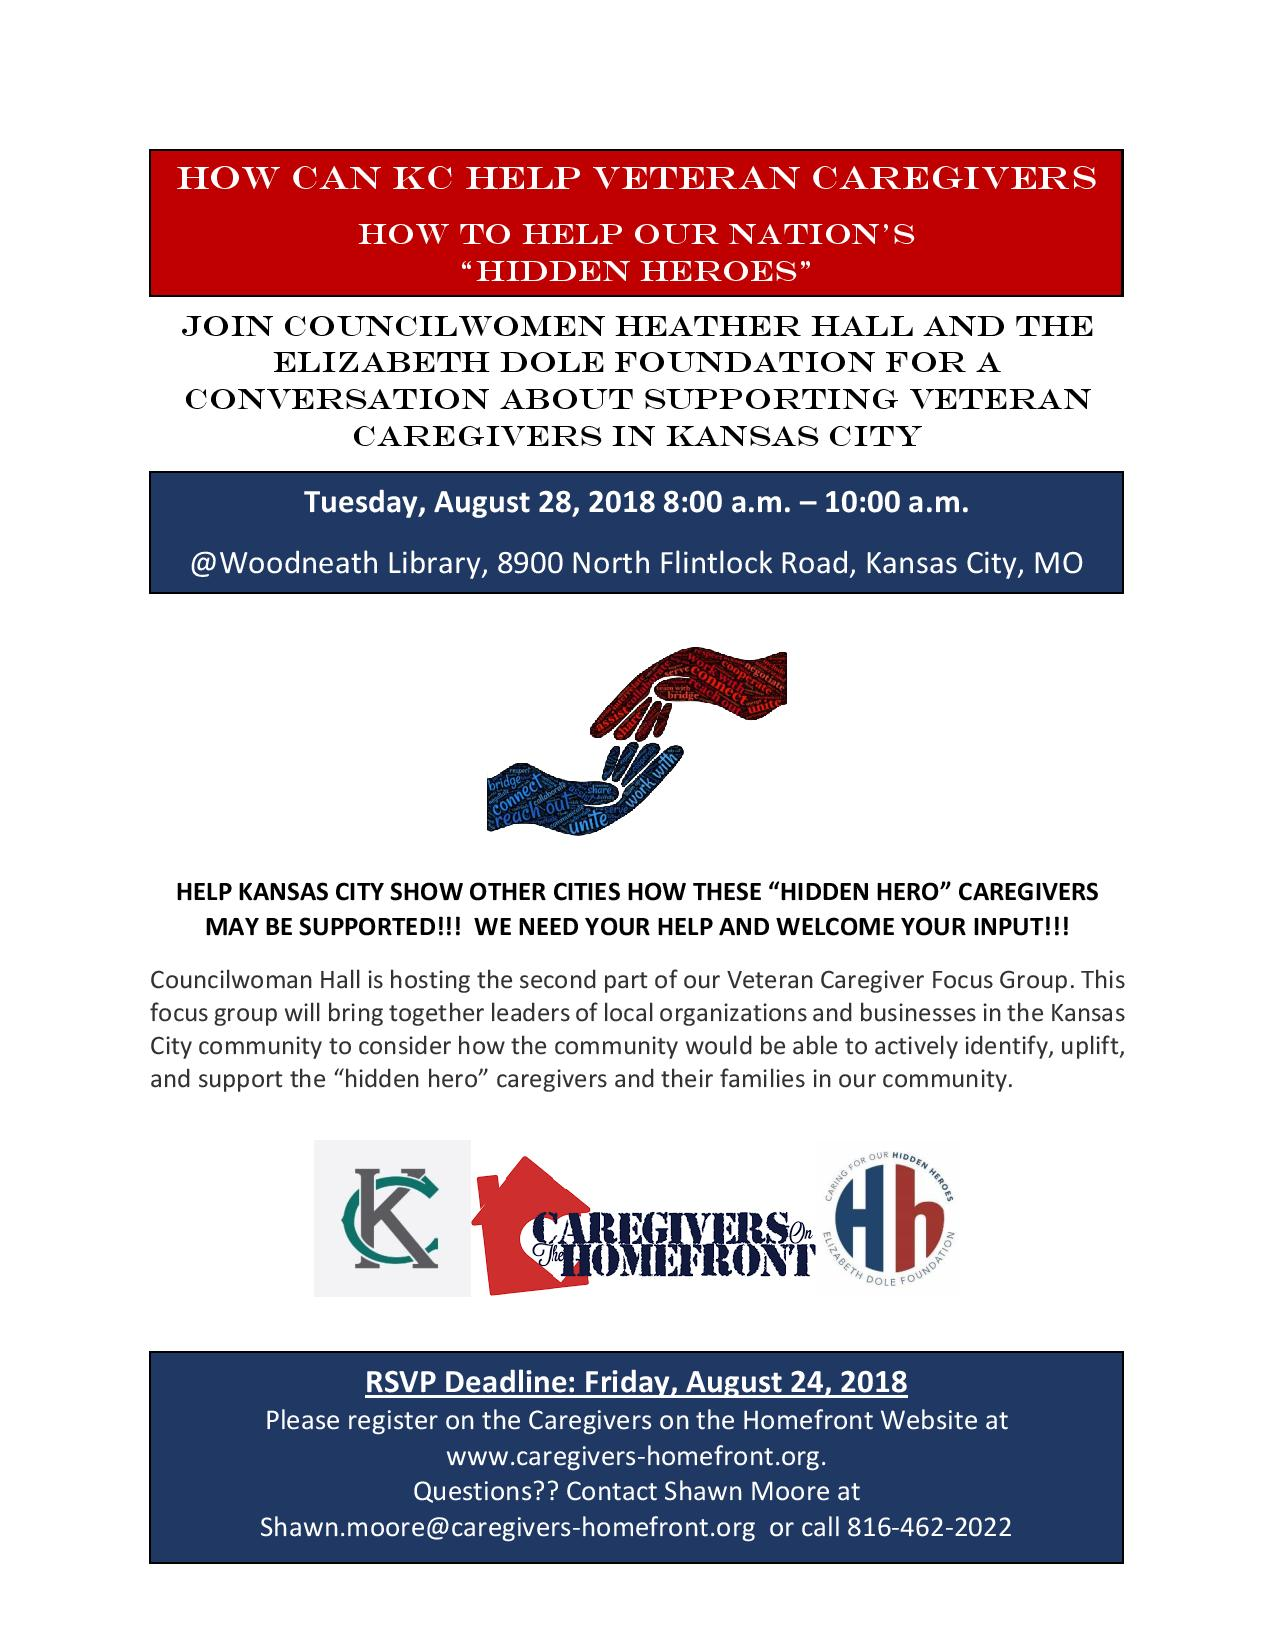 Veteran and Cargiver Focus Group and Panel